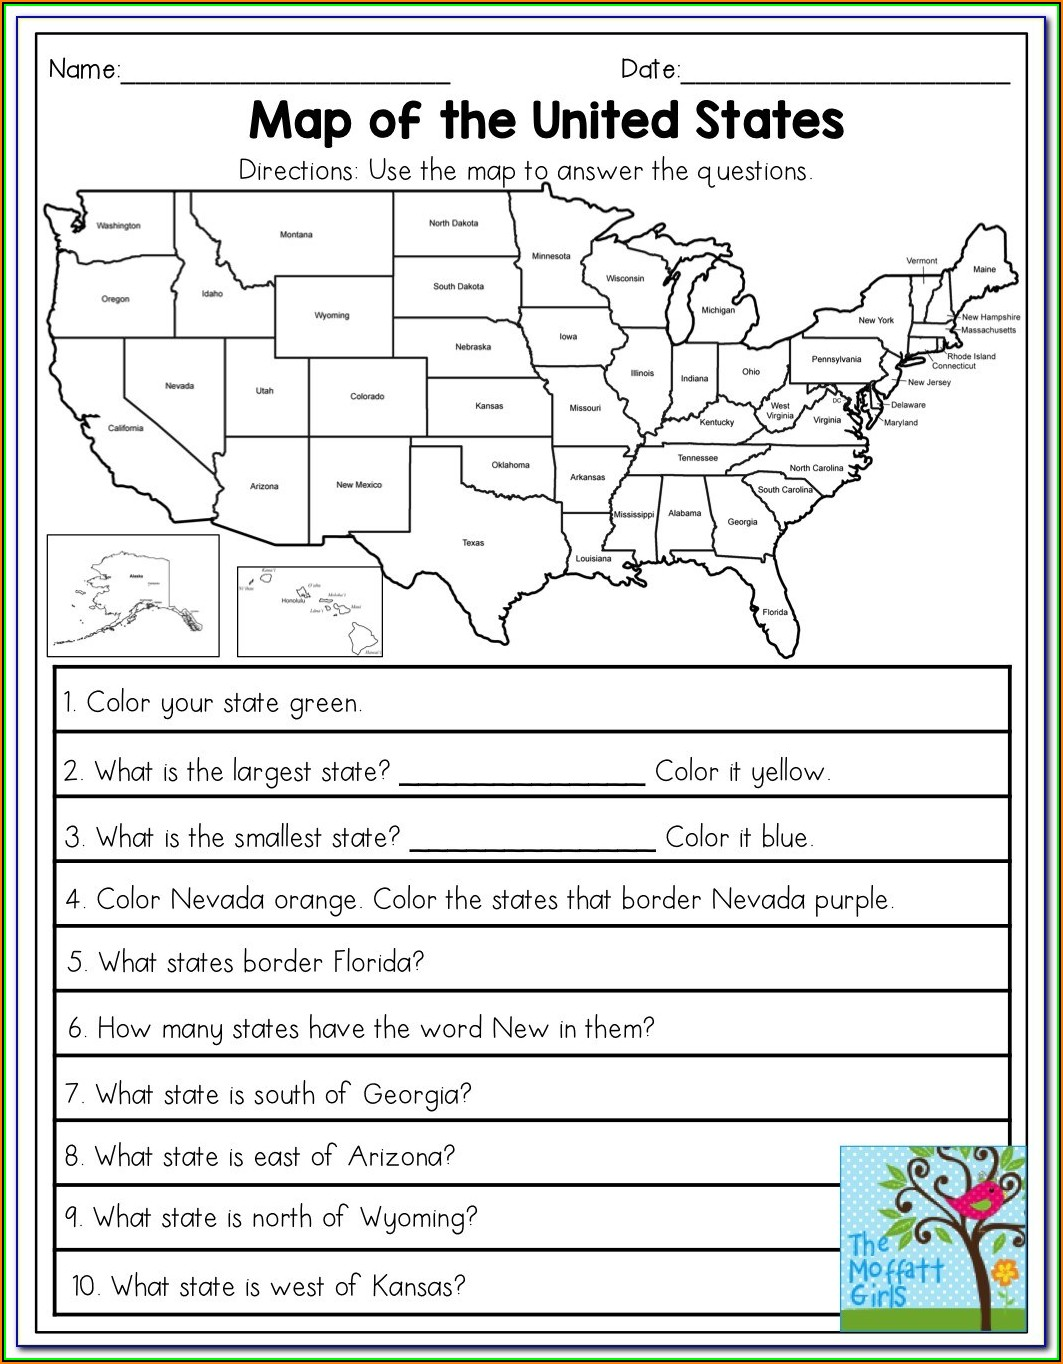 Map Practice Test For 3rd Grade